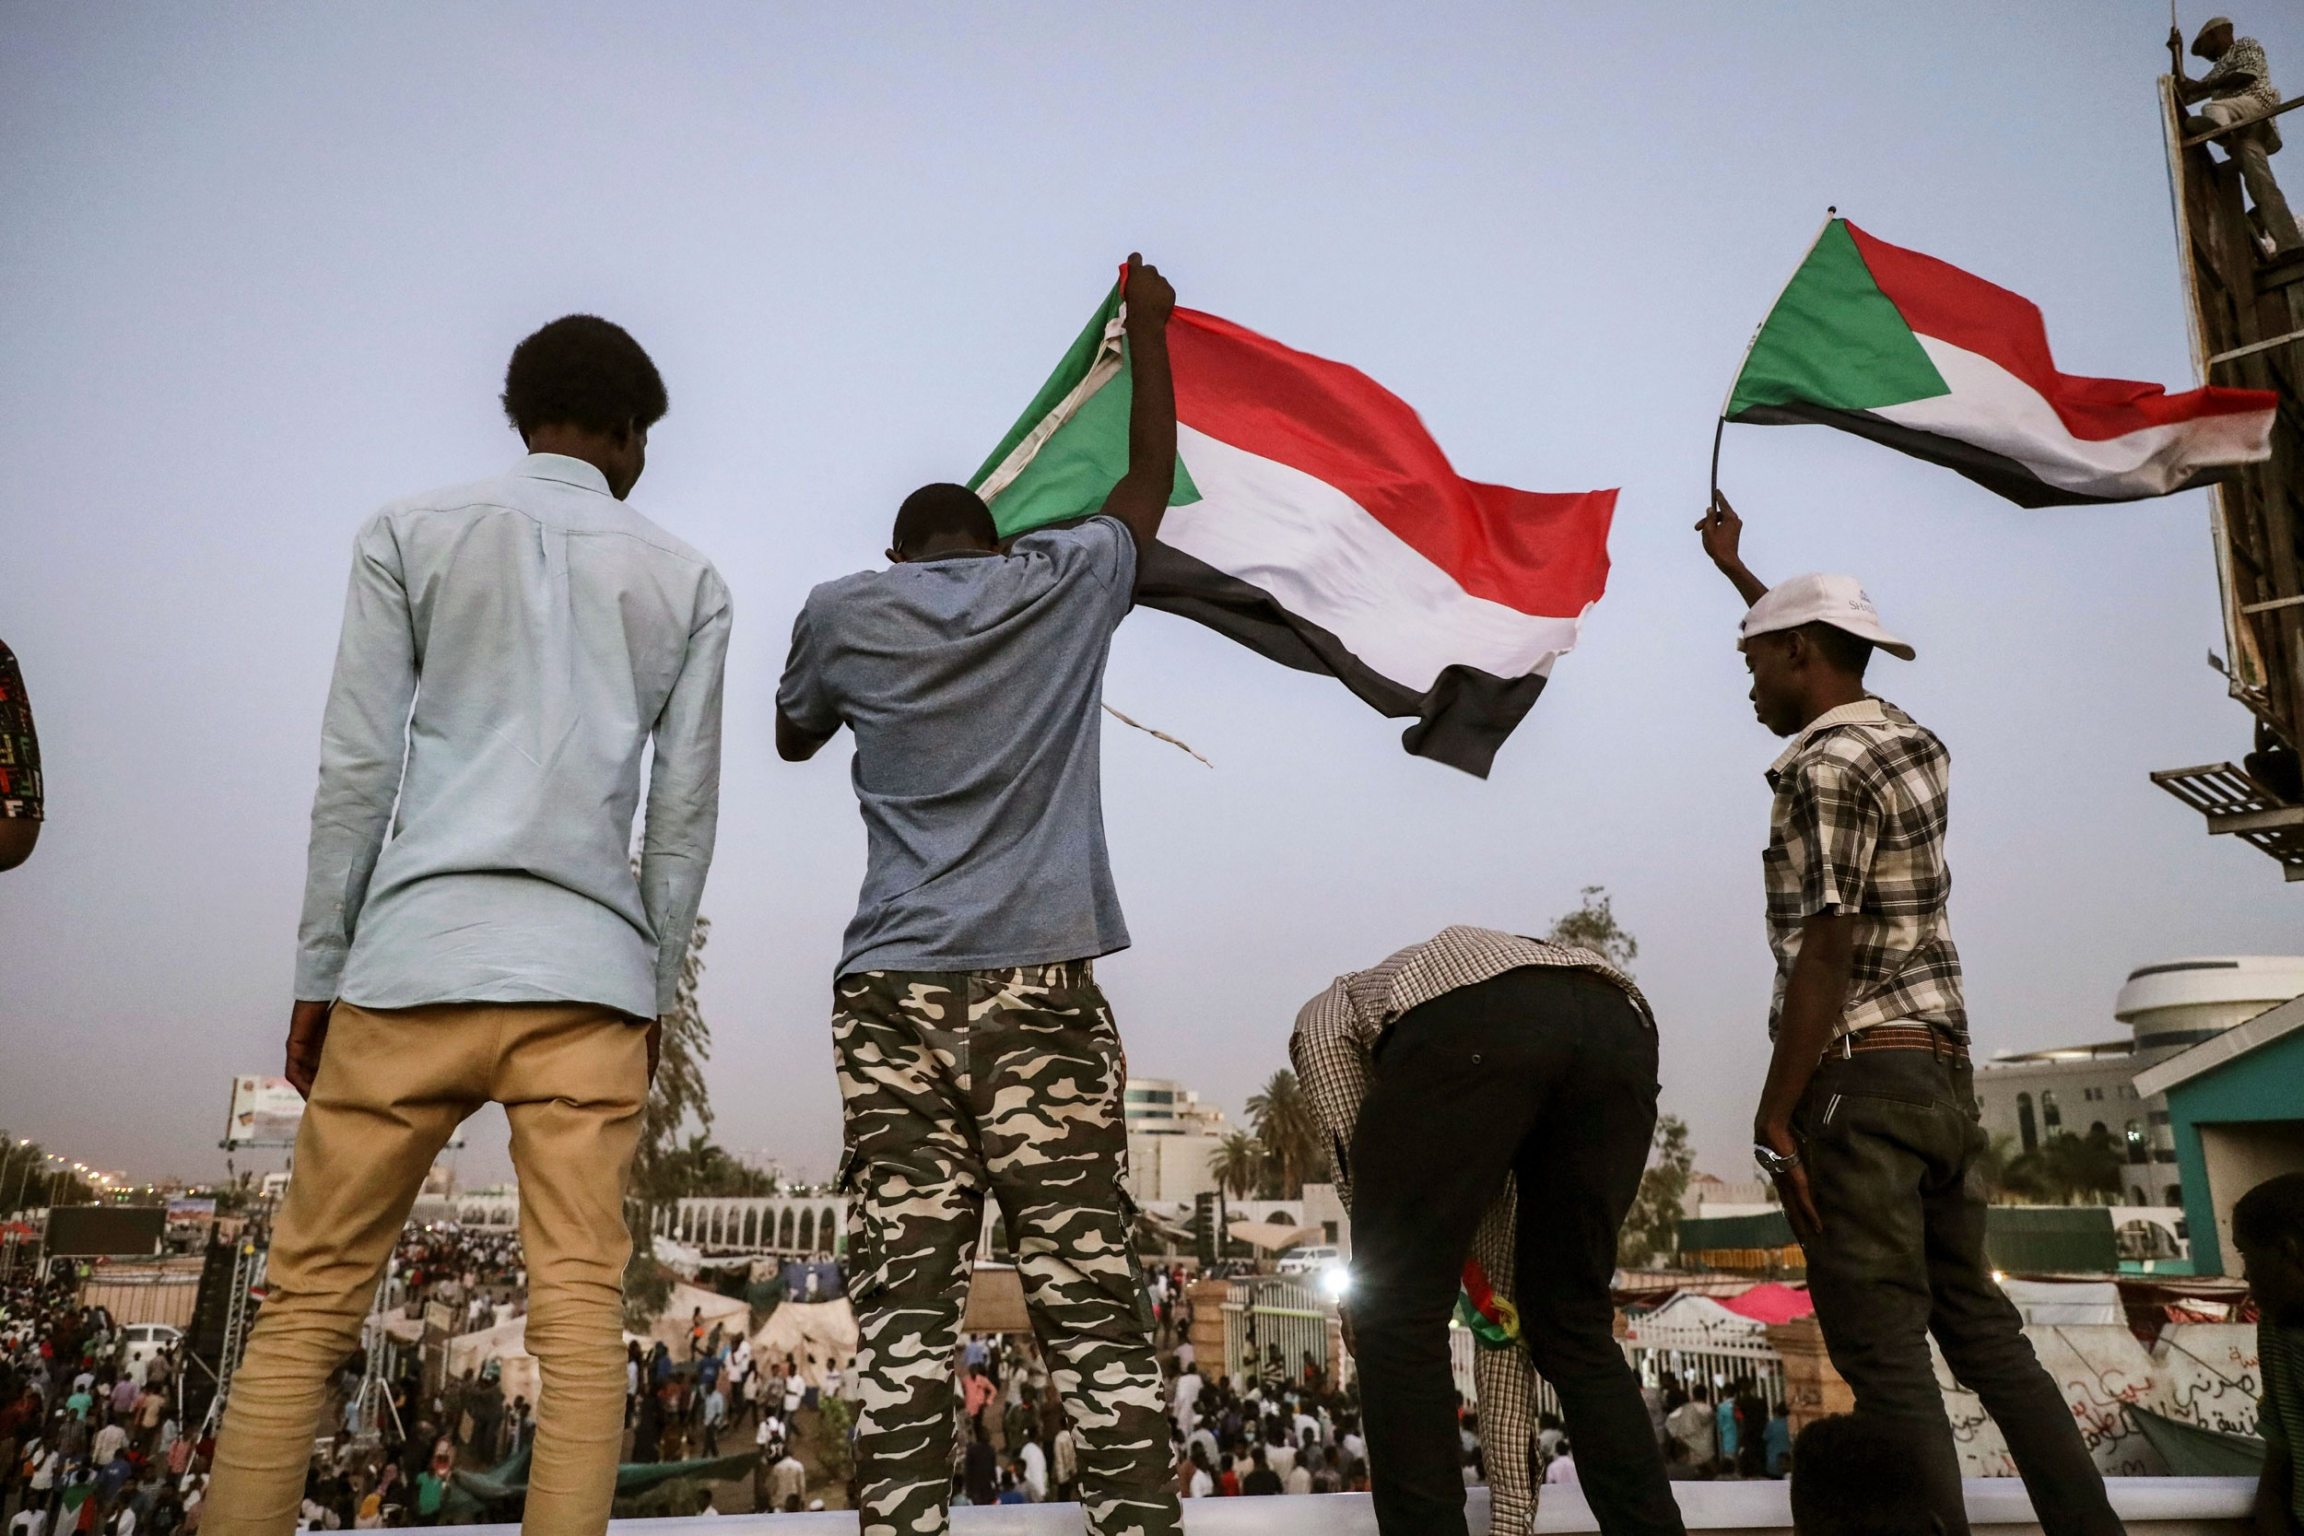 A group of four men are shown with two waving the Sudanese national flag.